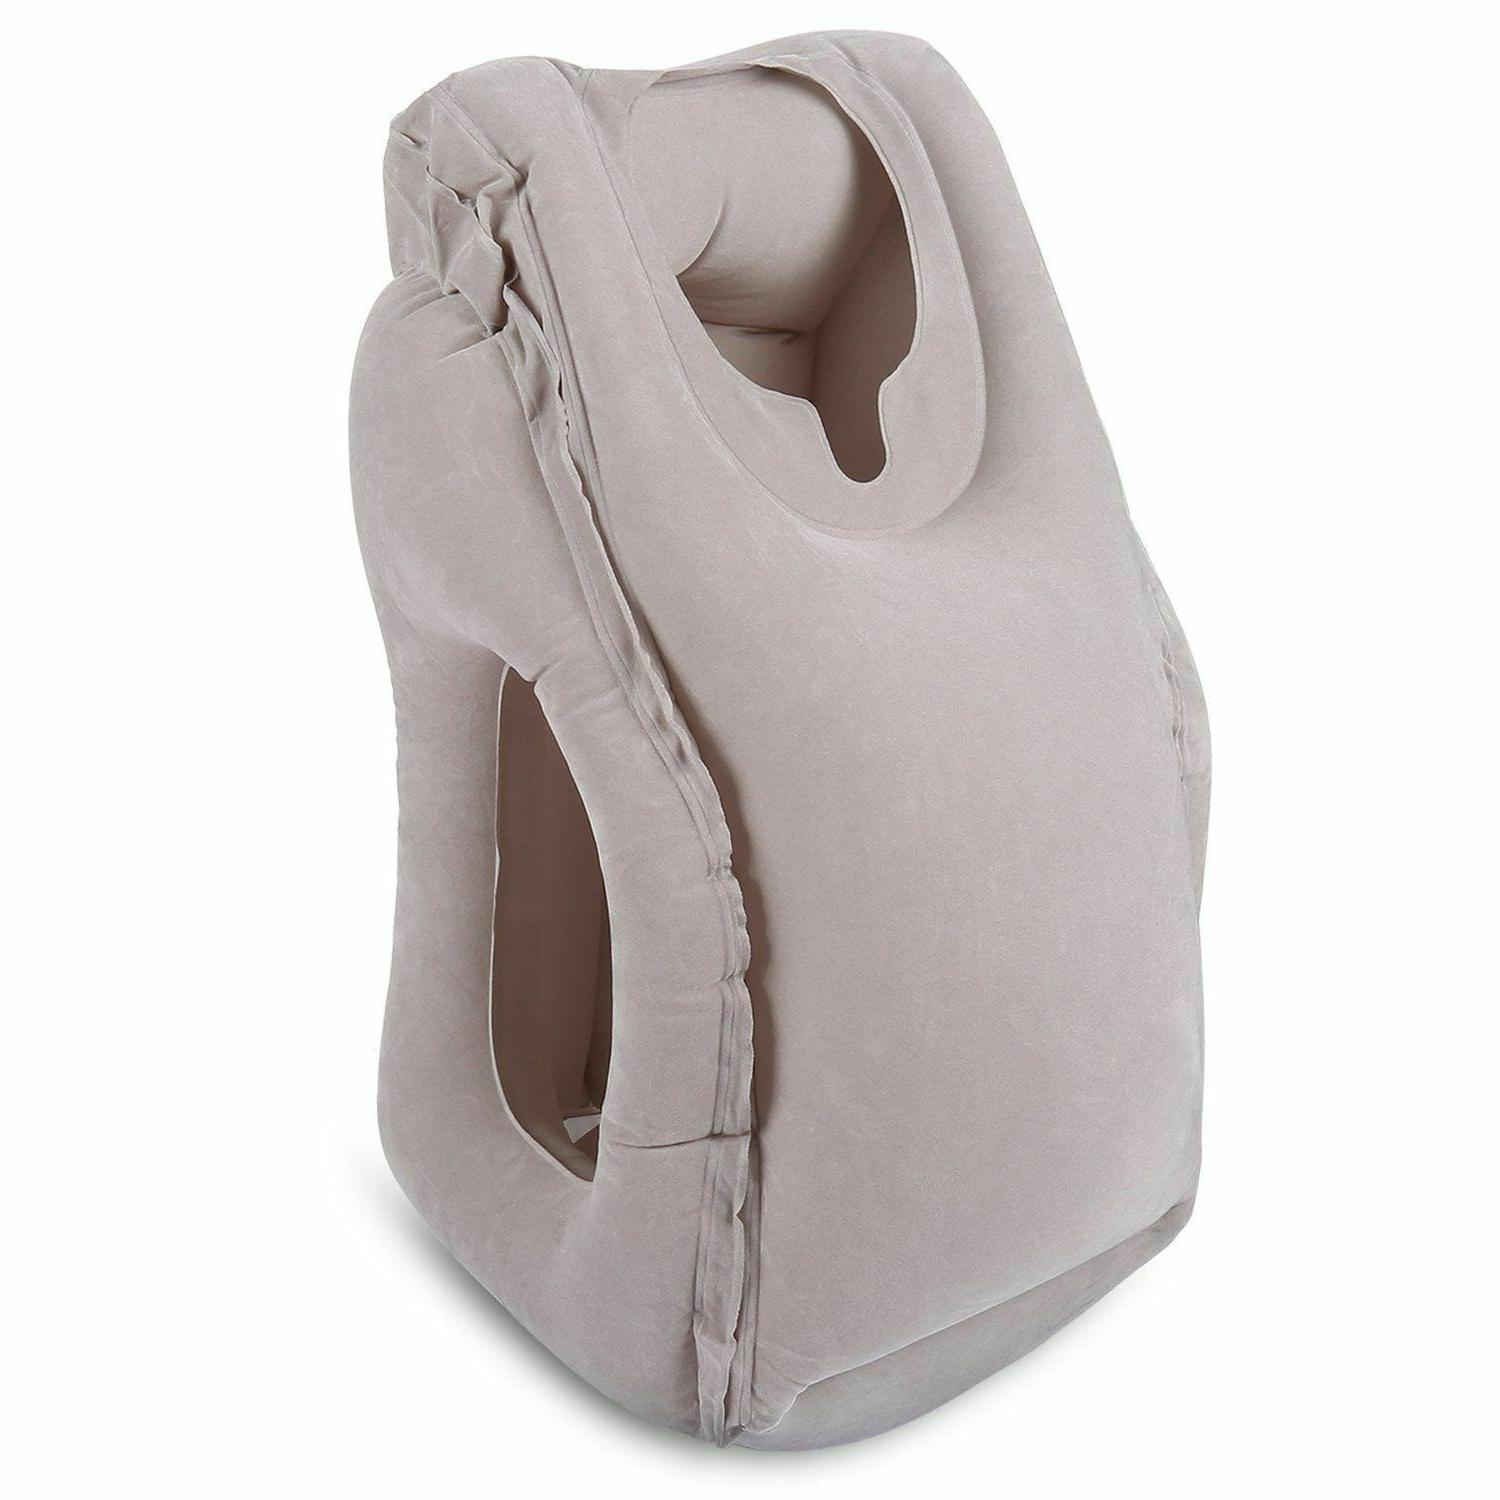 Portable Pillow Airplane Neck Head Rest